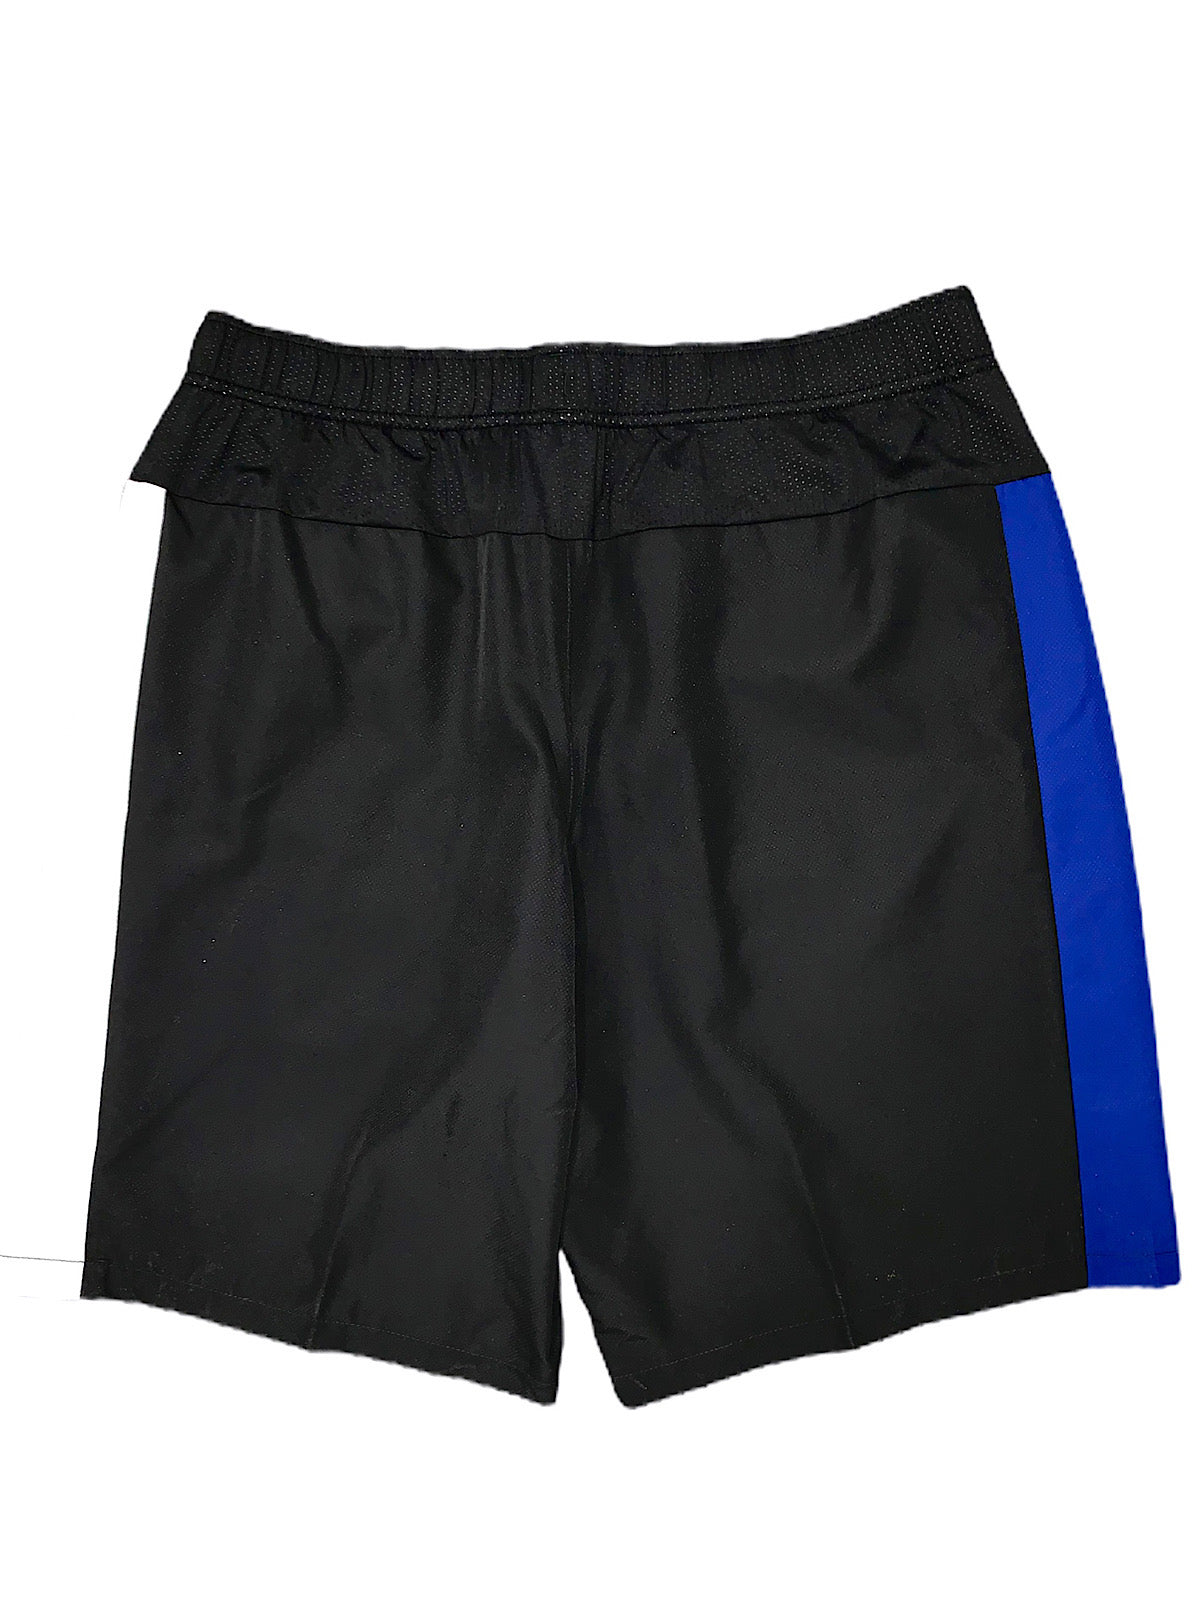 Lacoste Shorts - Sport Contrast Band - Black/Blue - GH6788-51